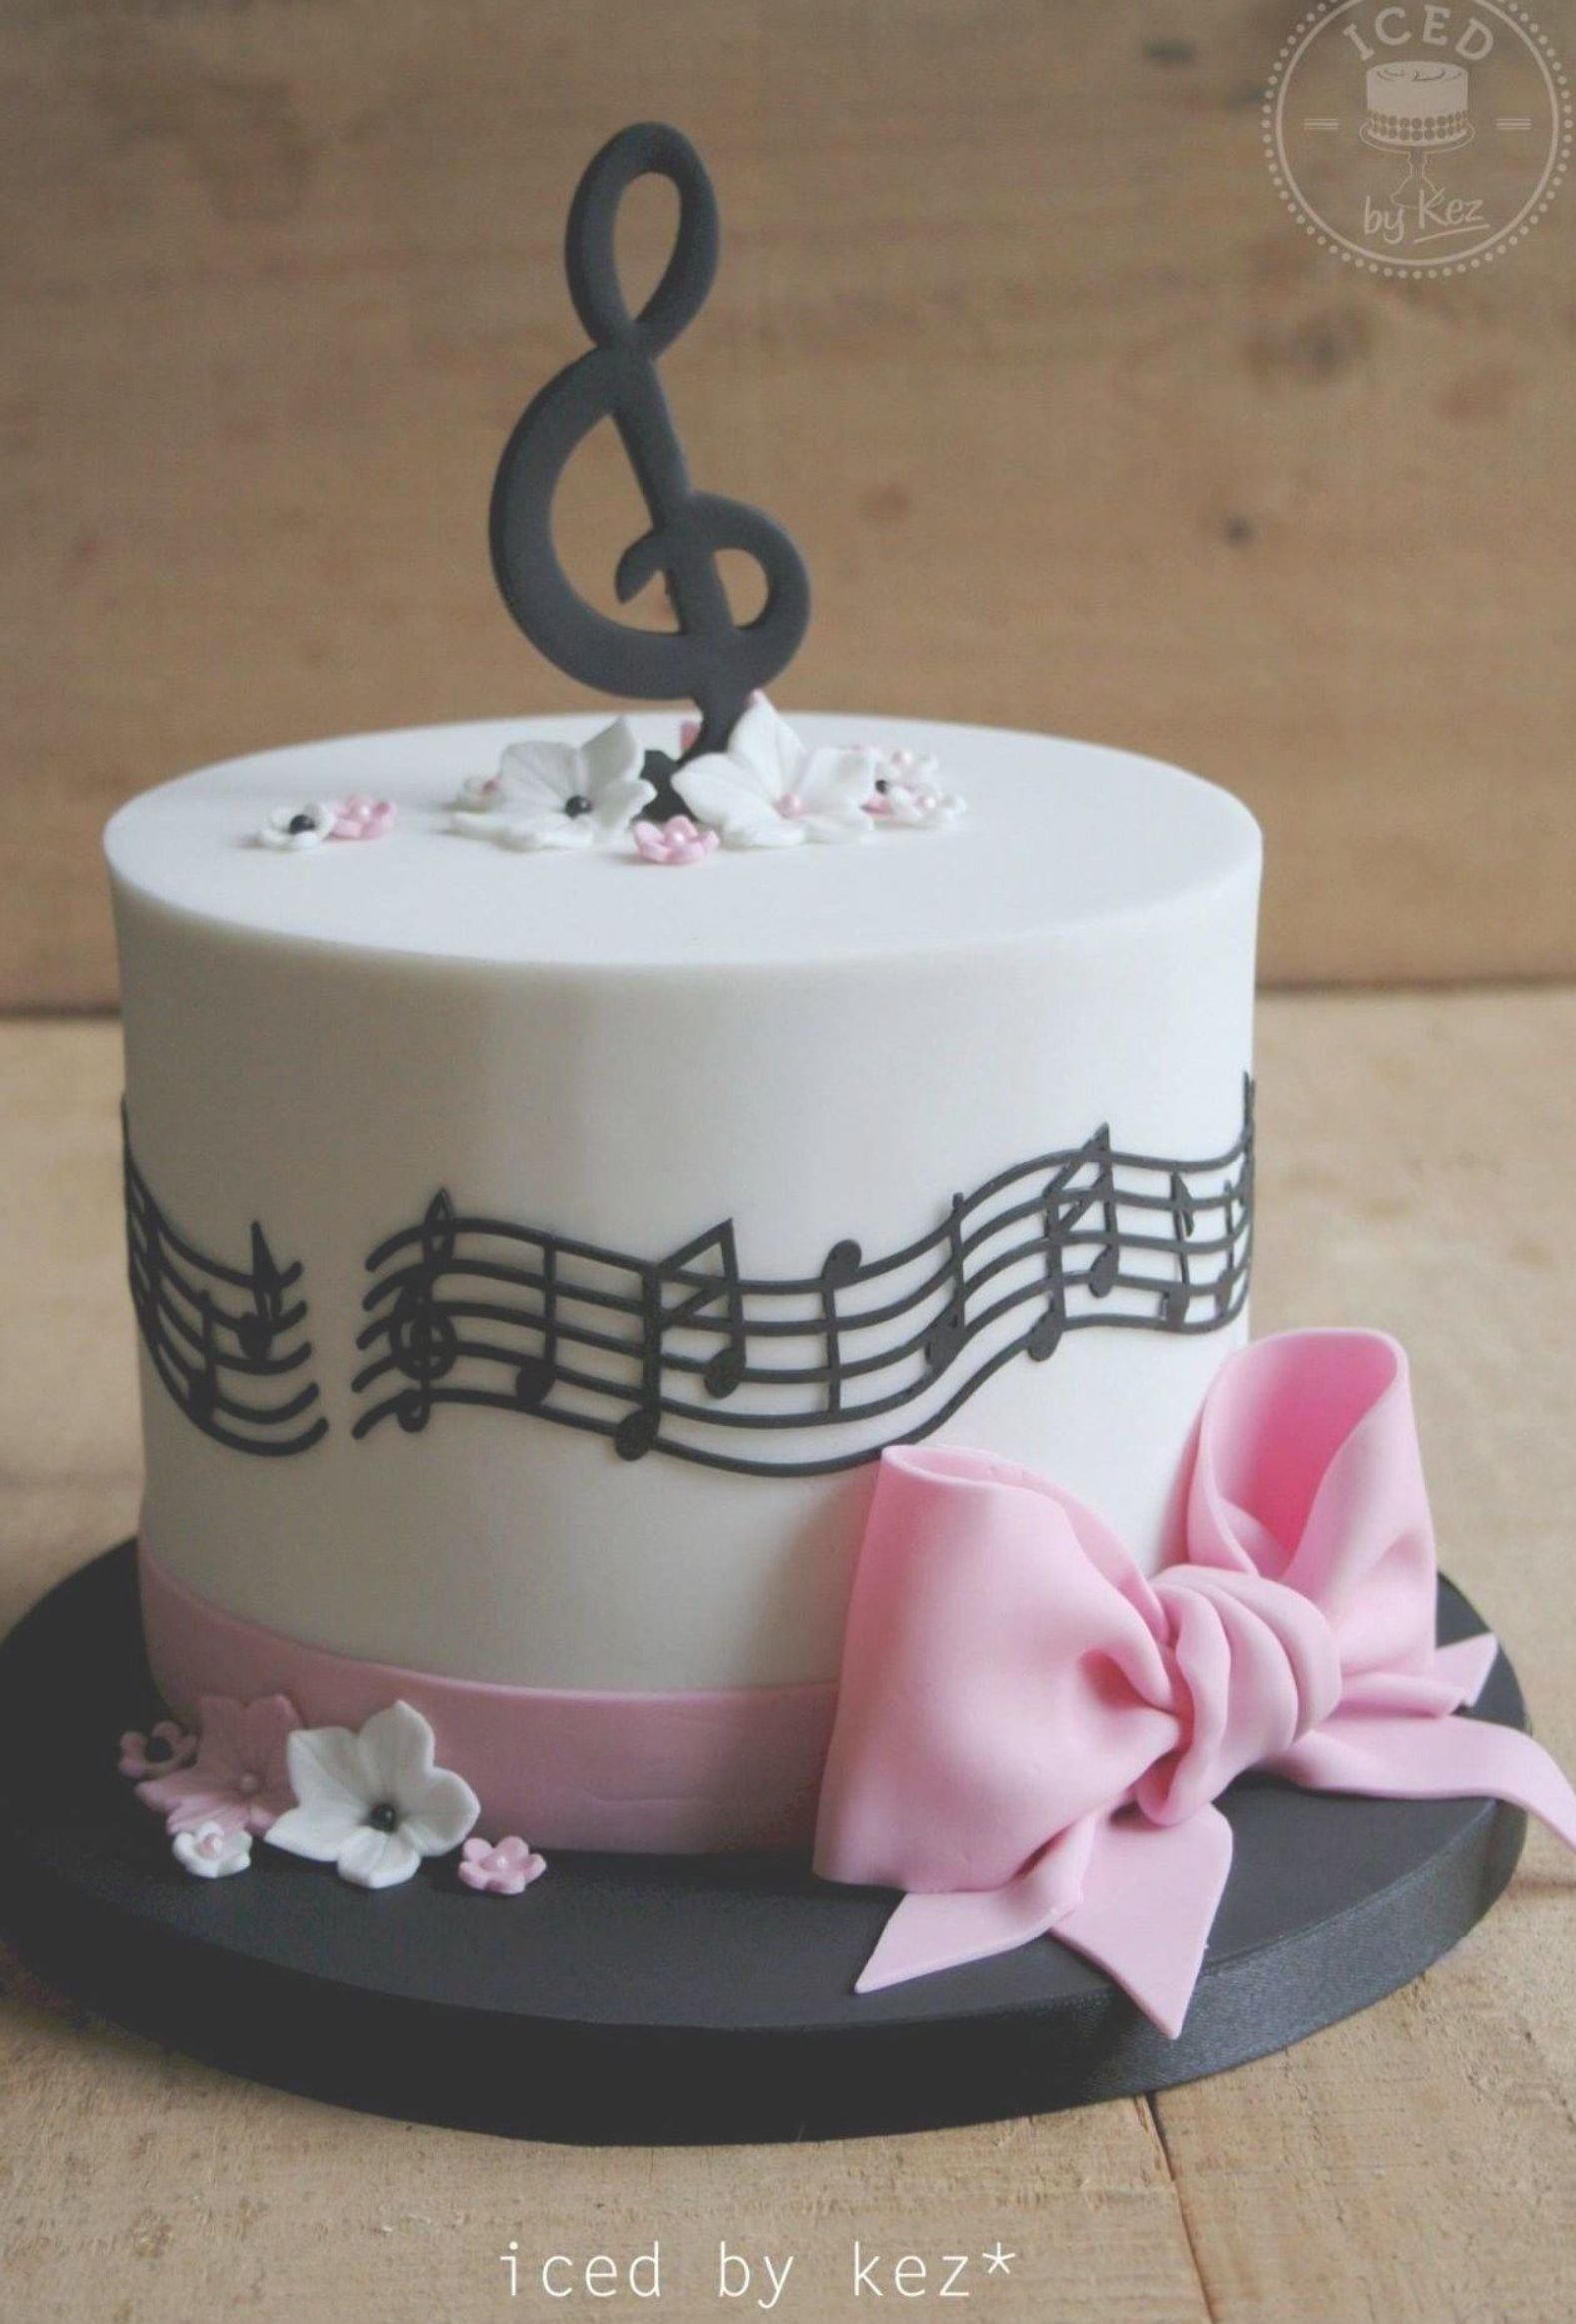 Music Birthday Cakes Iced Kez Cakes Pinterest Cake Music Cakes And